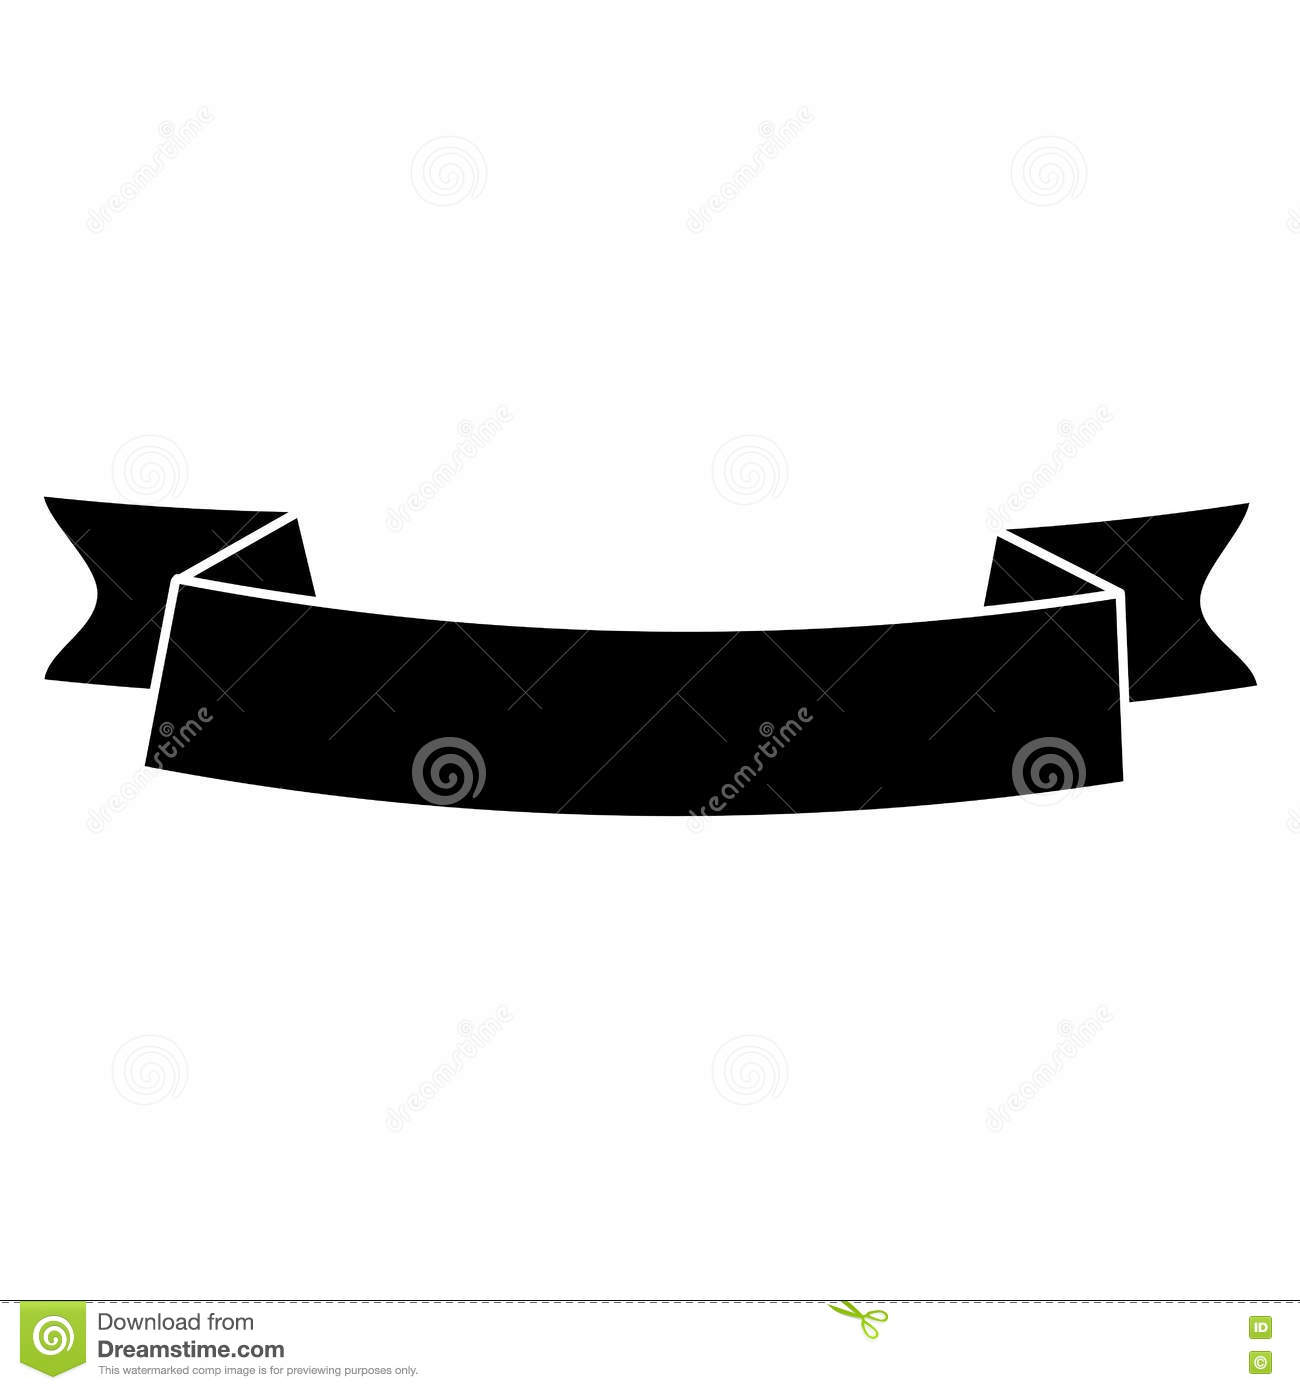 Ribbon Banner Vector Black Pictures to Pin on Pinterest ...